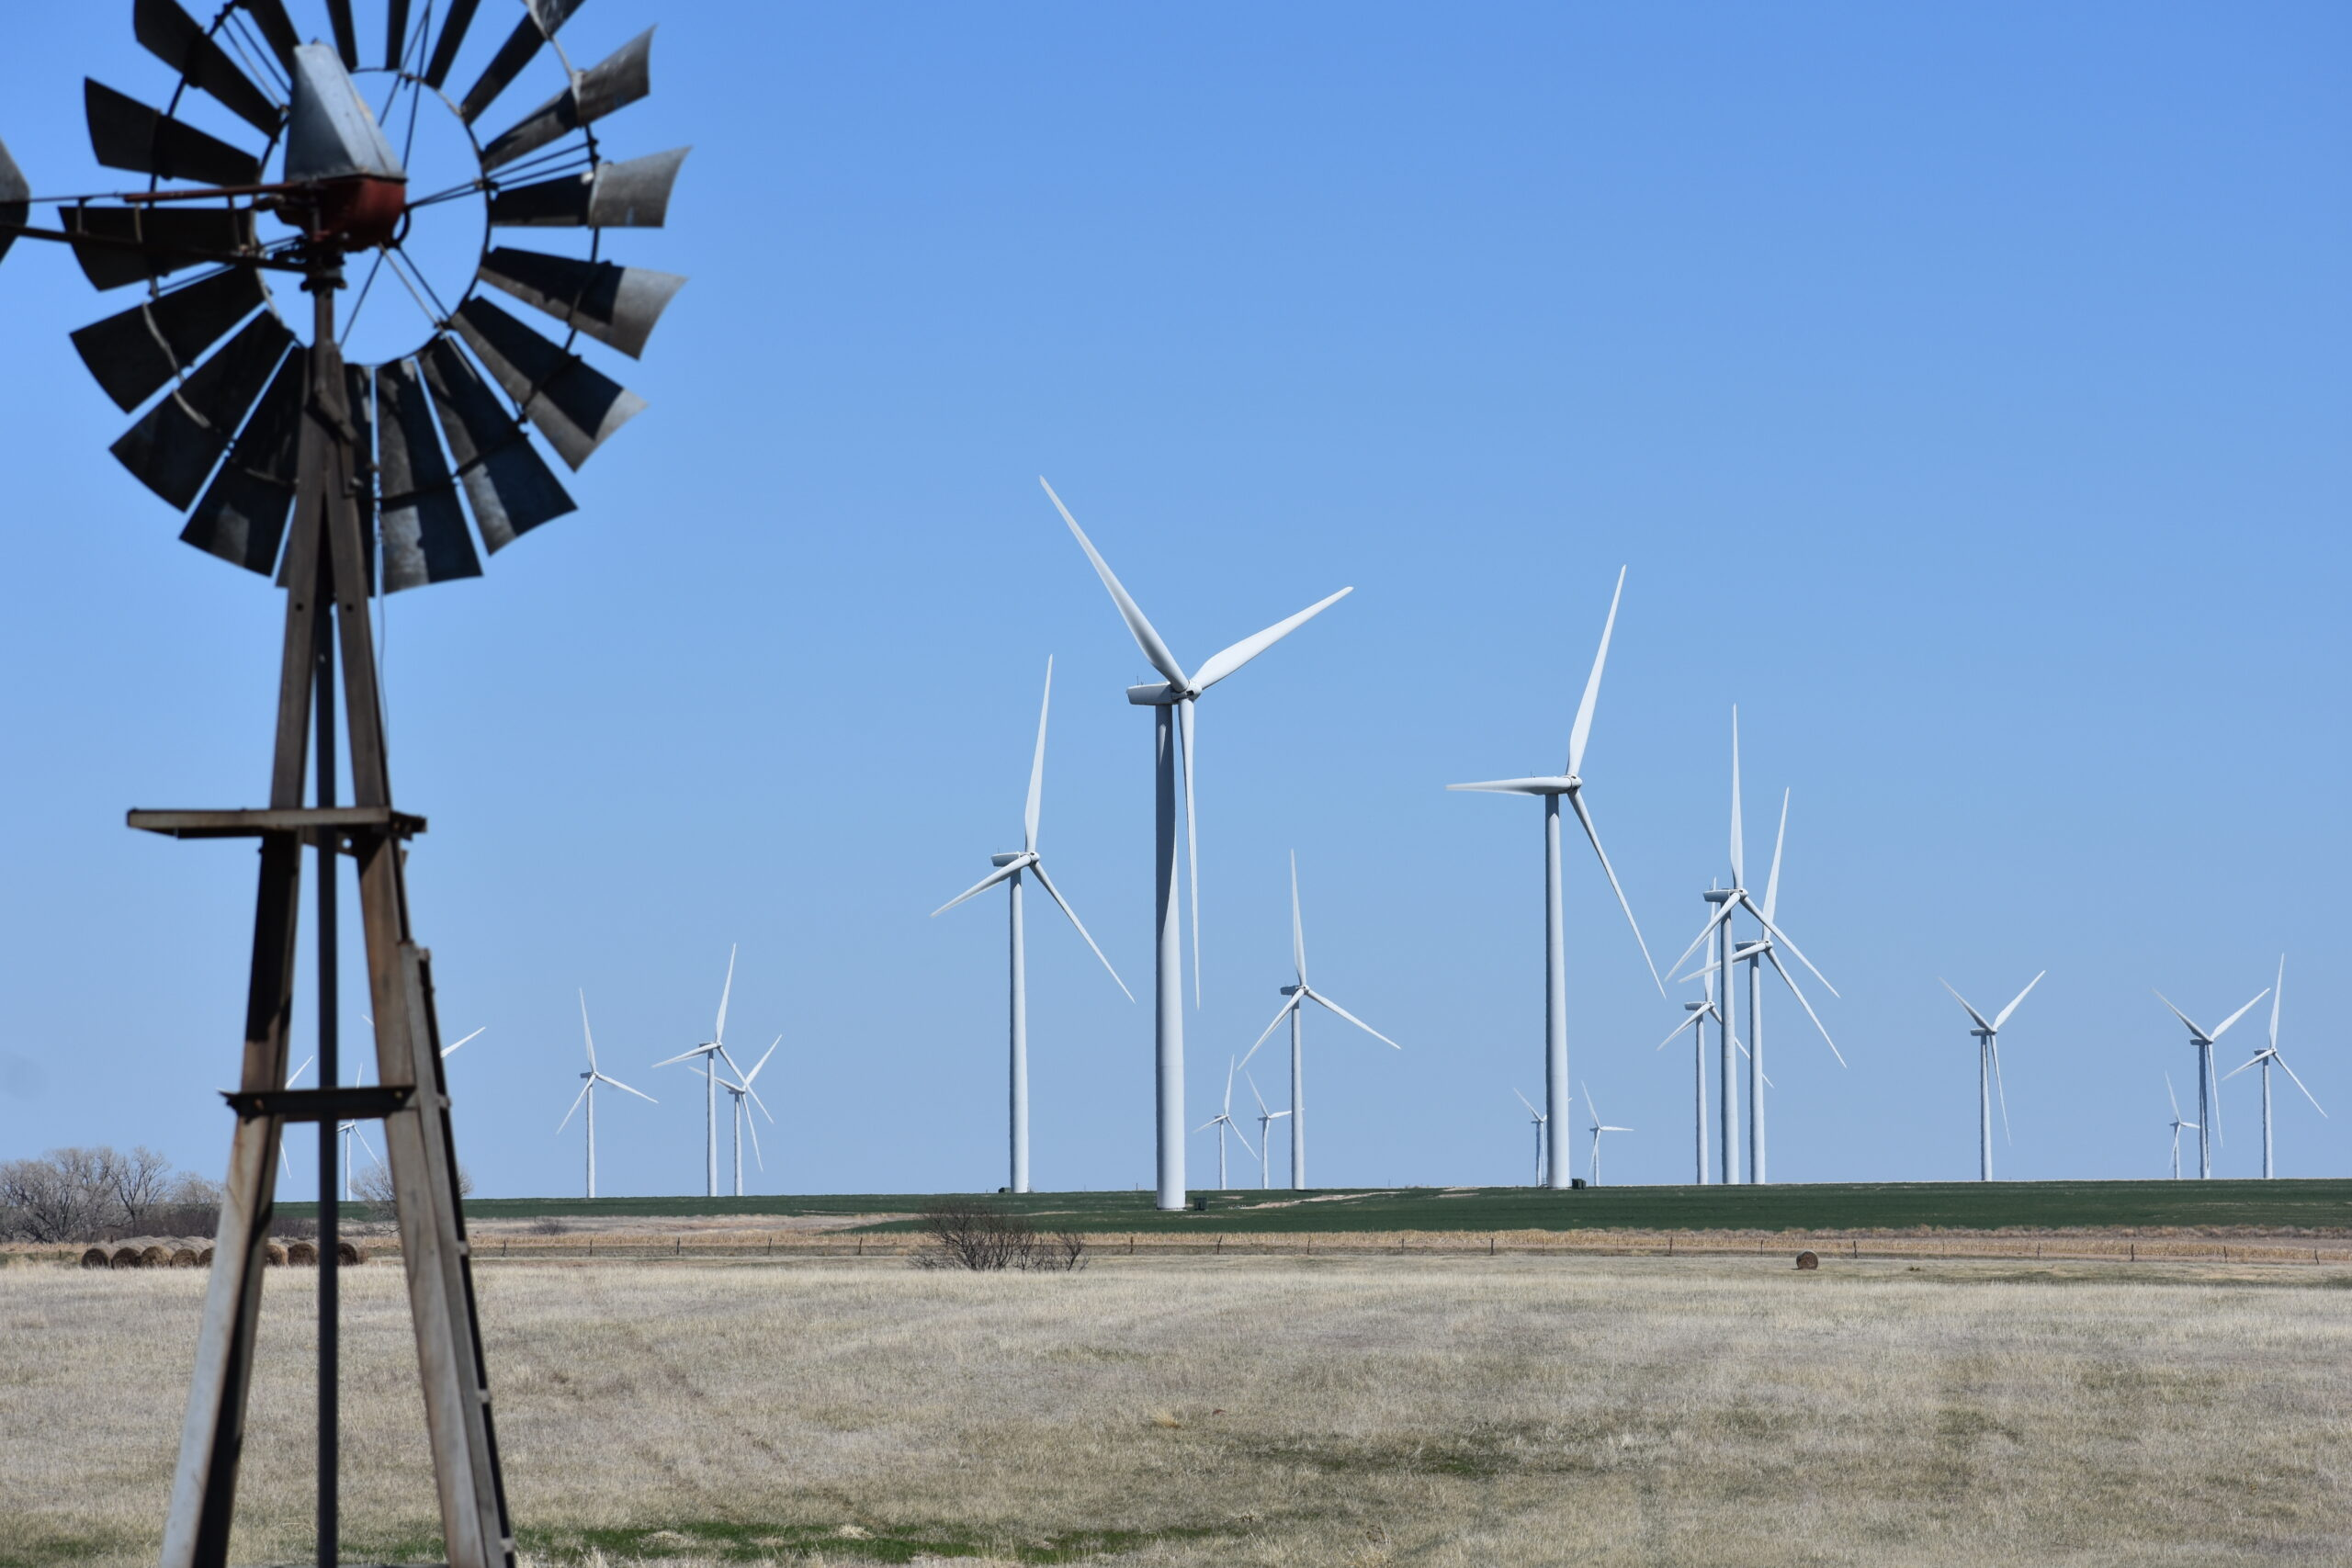 An old farm windmill used to pull water from the ground stands among dozens of modern wind turbines constructed in southwest Kansas as the state worked to harness the breeze to produce electricity. (Jill Hummels for the Kansas Reflector)